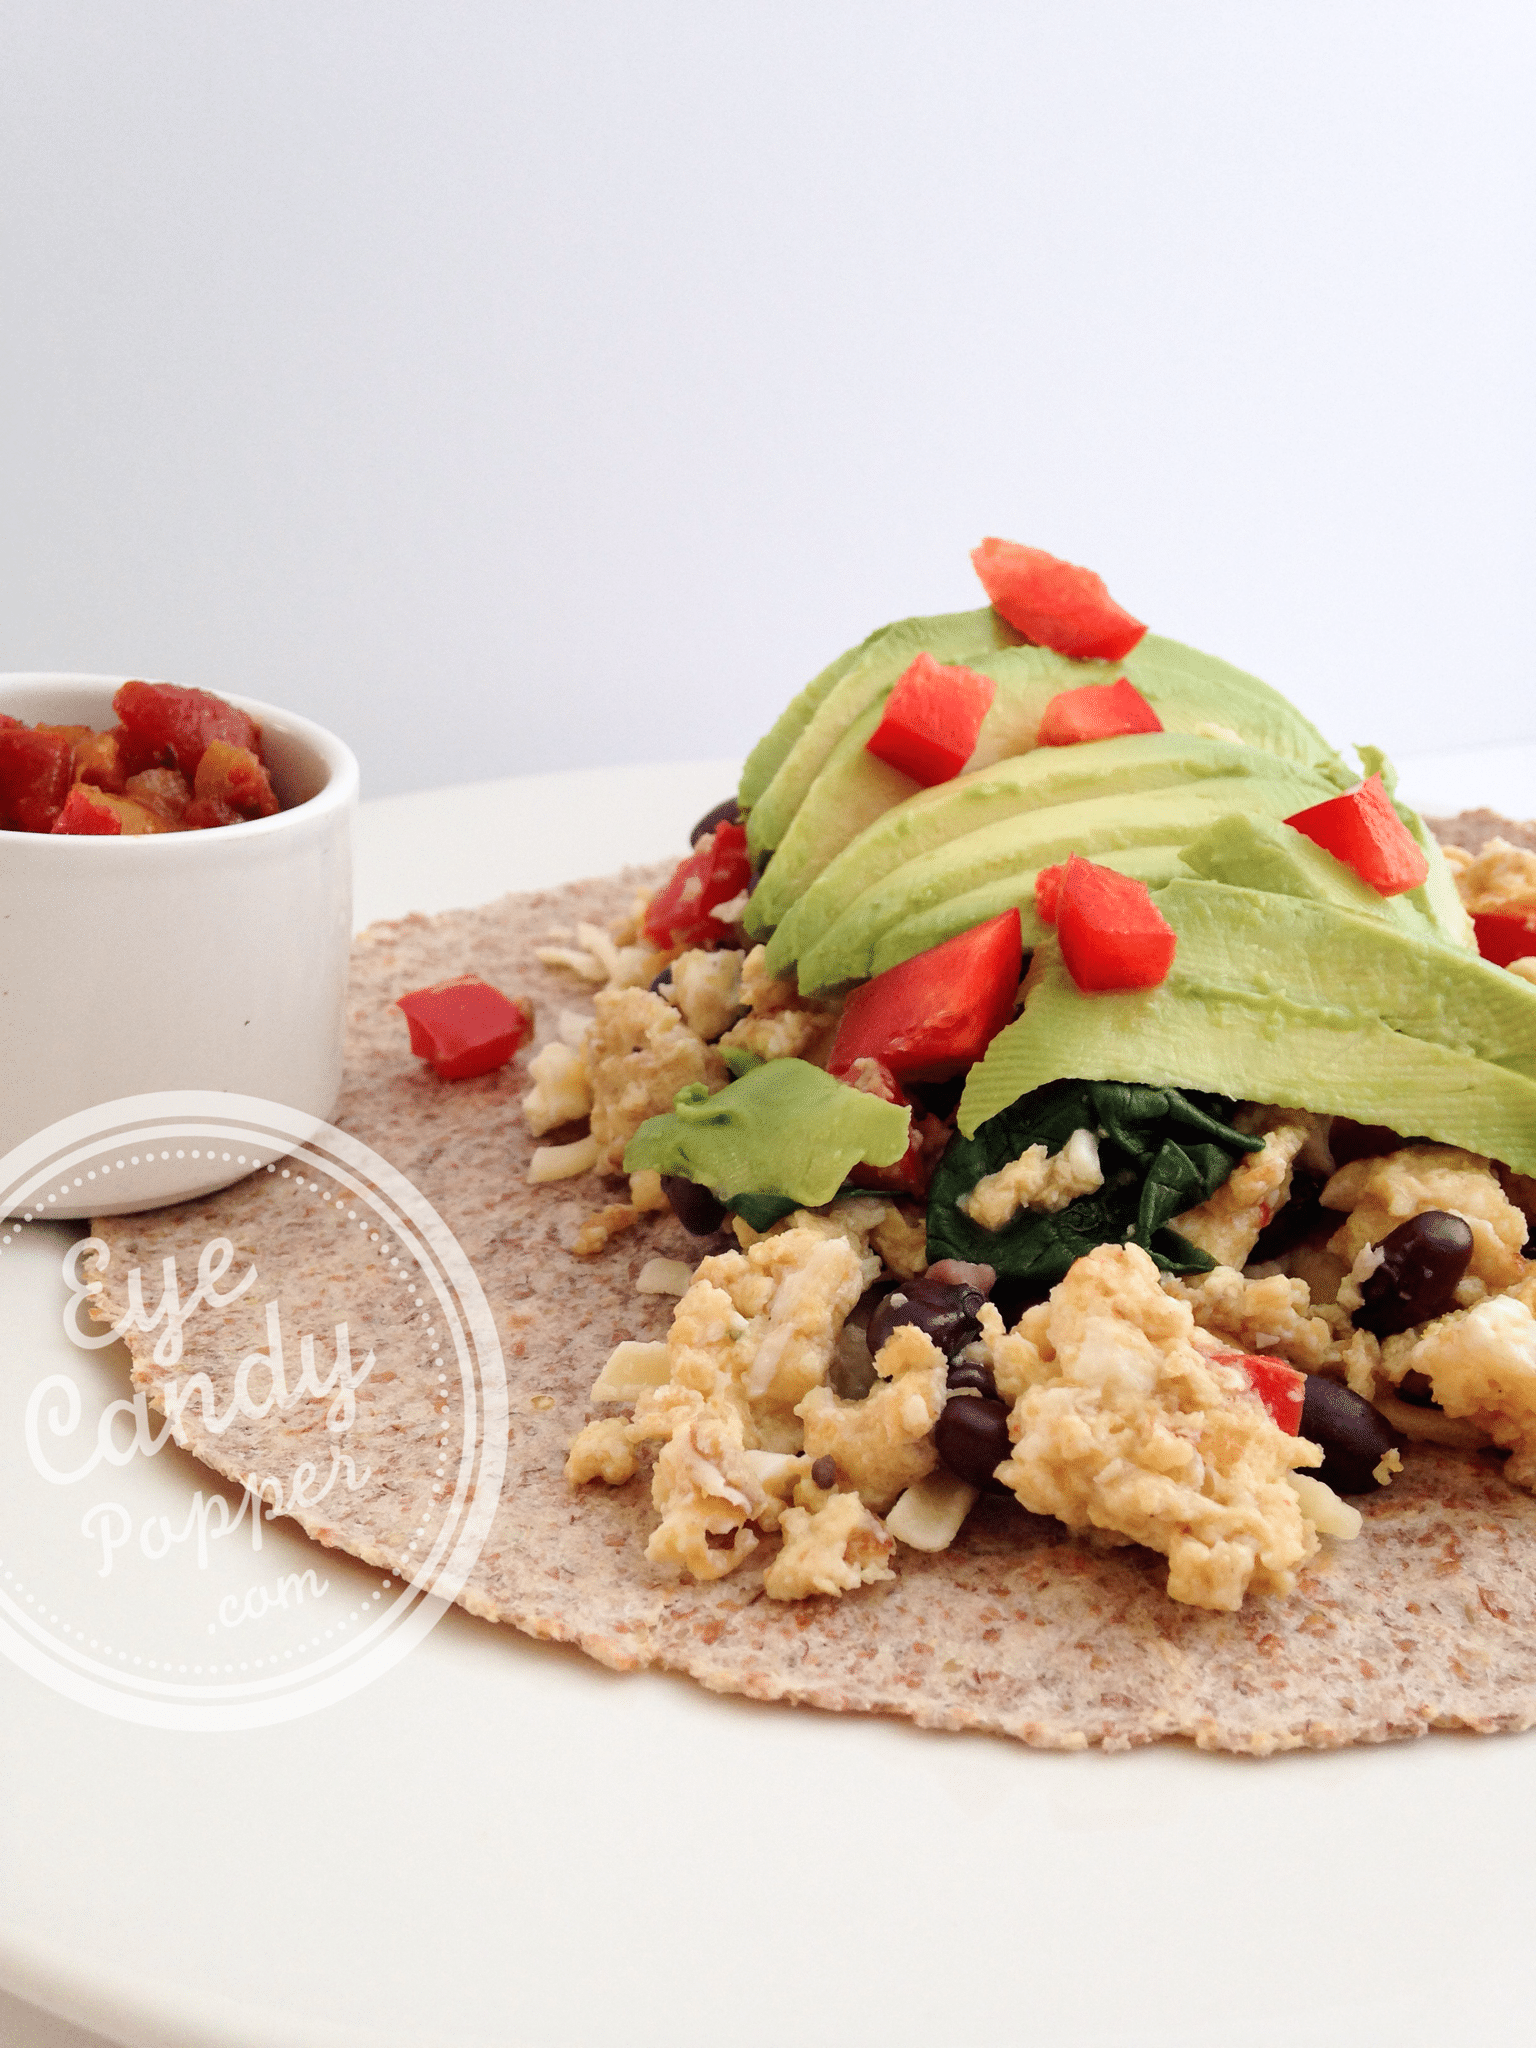 Meatless Monday: Breakfast Burrito (vegetarian)